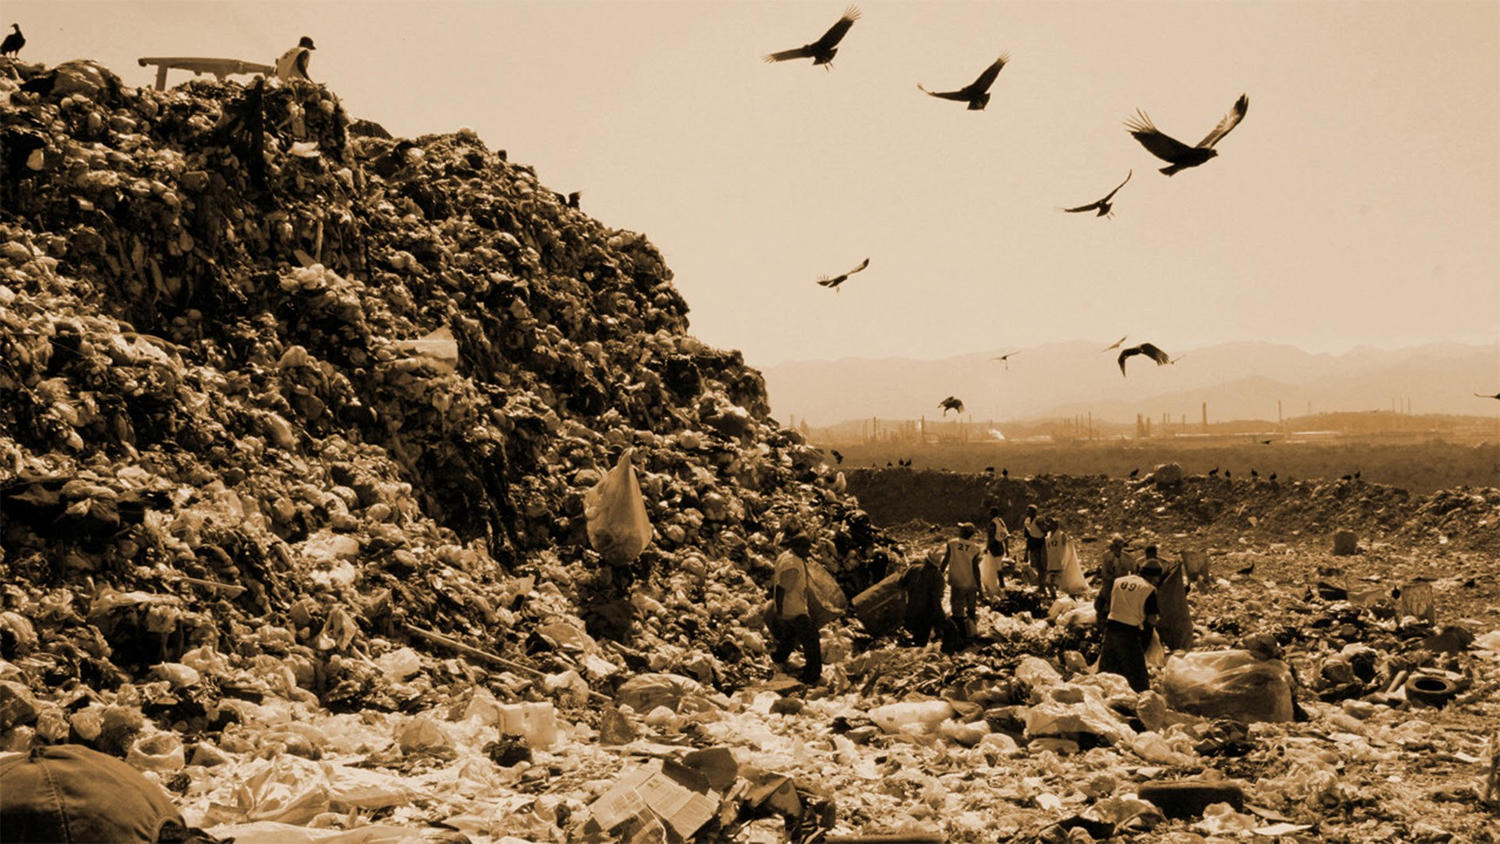 waste land, shot taken in brazil